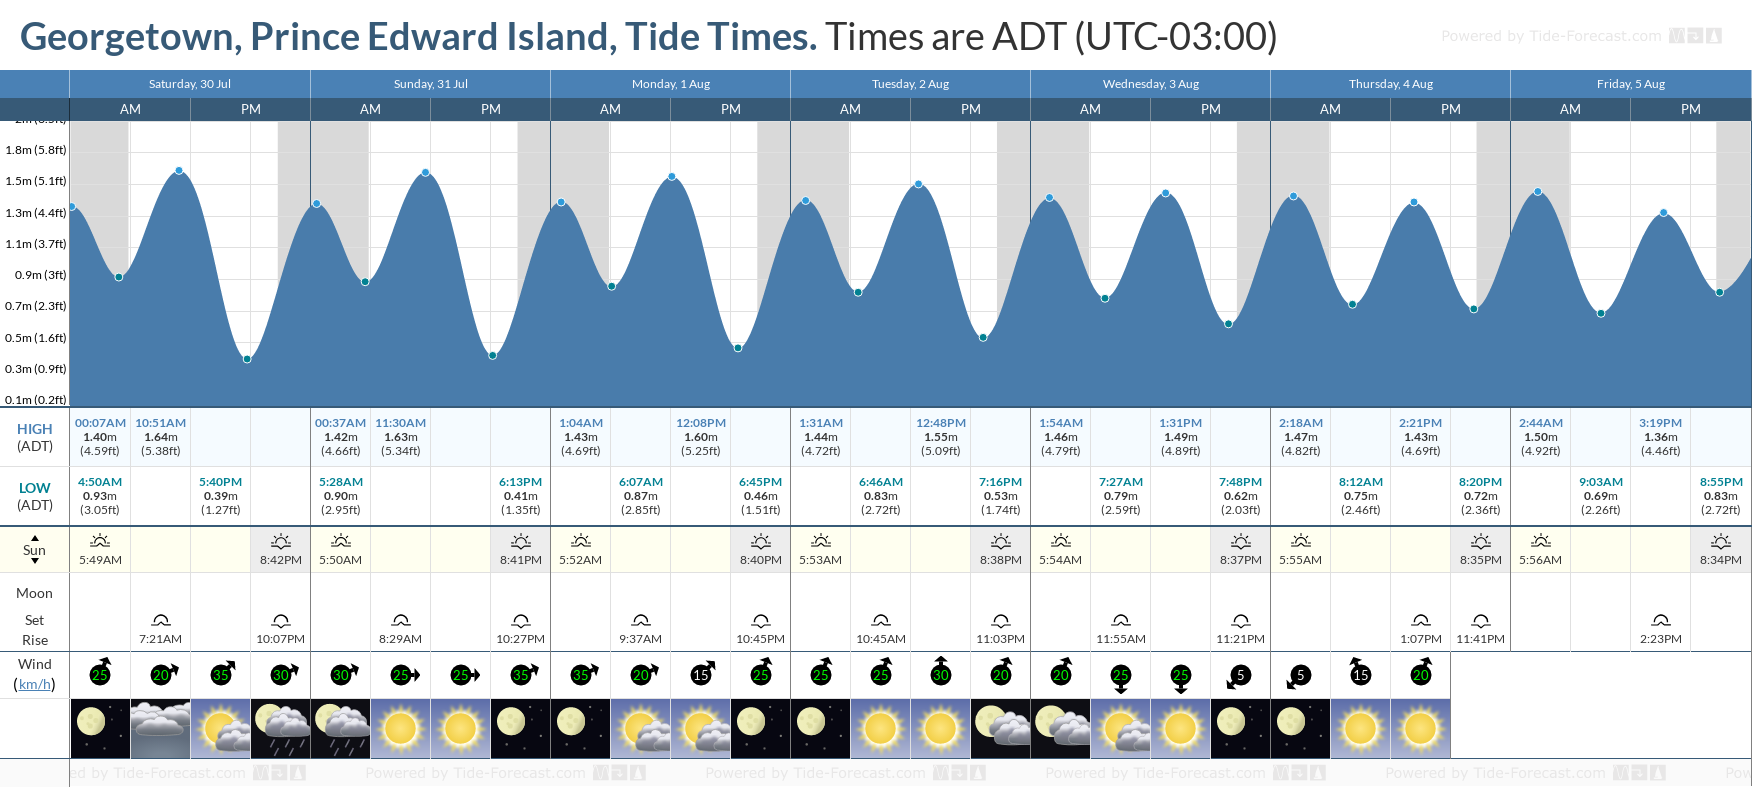 Georgetown, Prince Edward Island Tide Chart including high and low tide tide times for the next 7 days